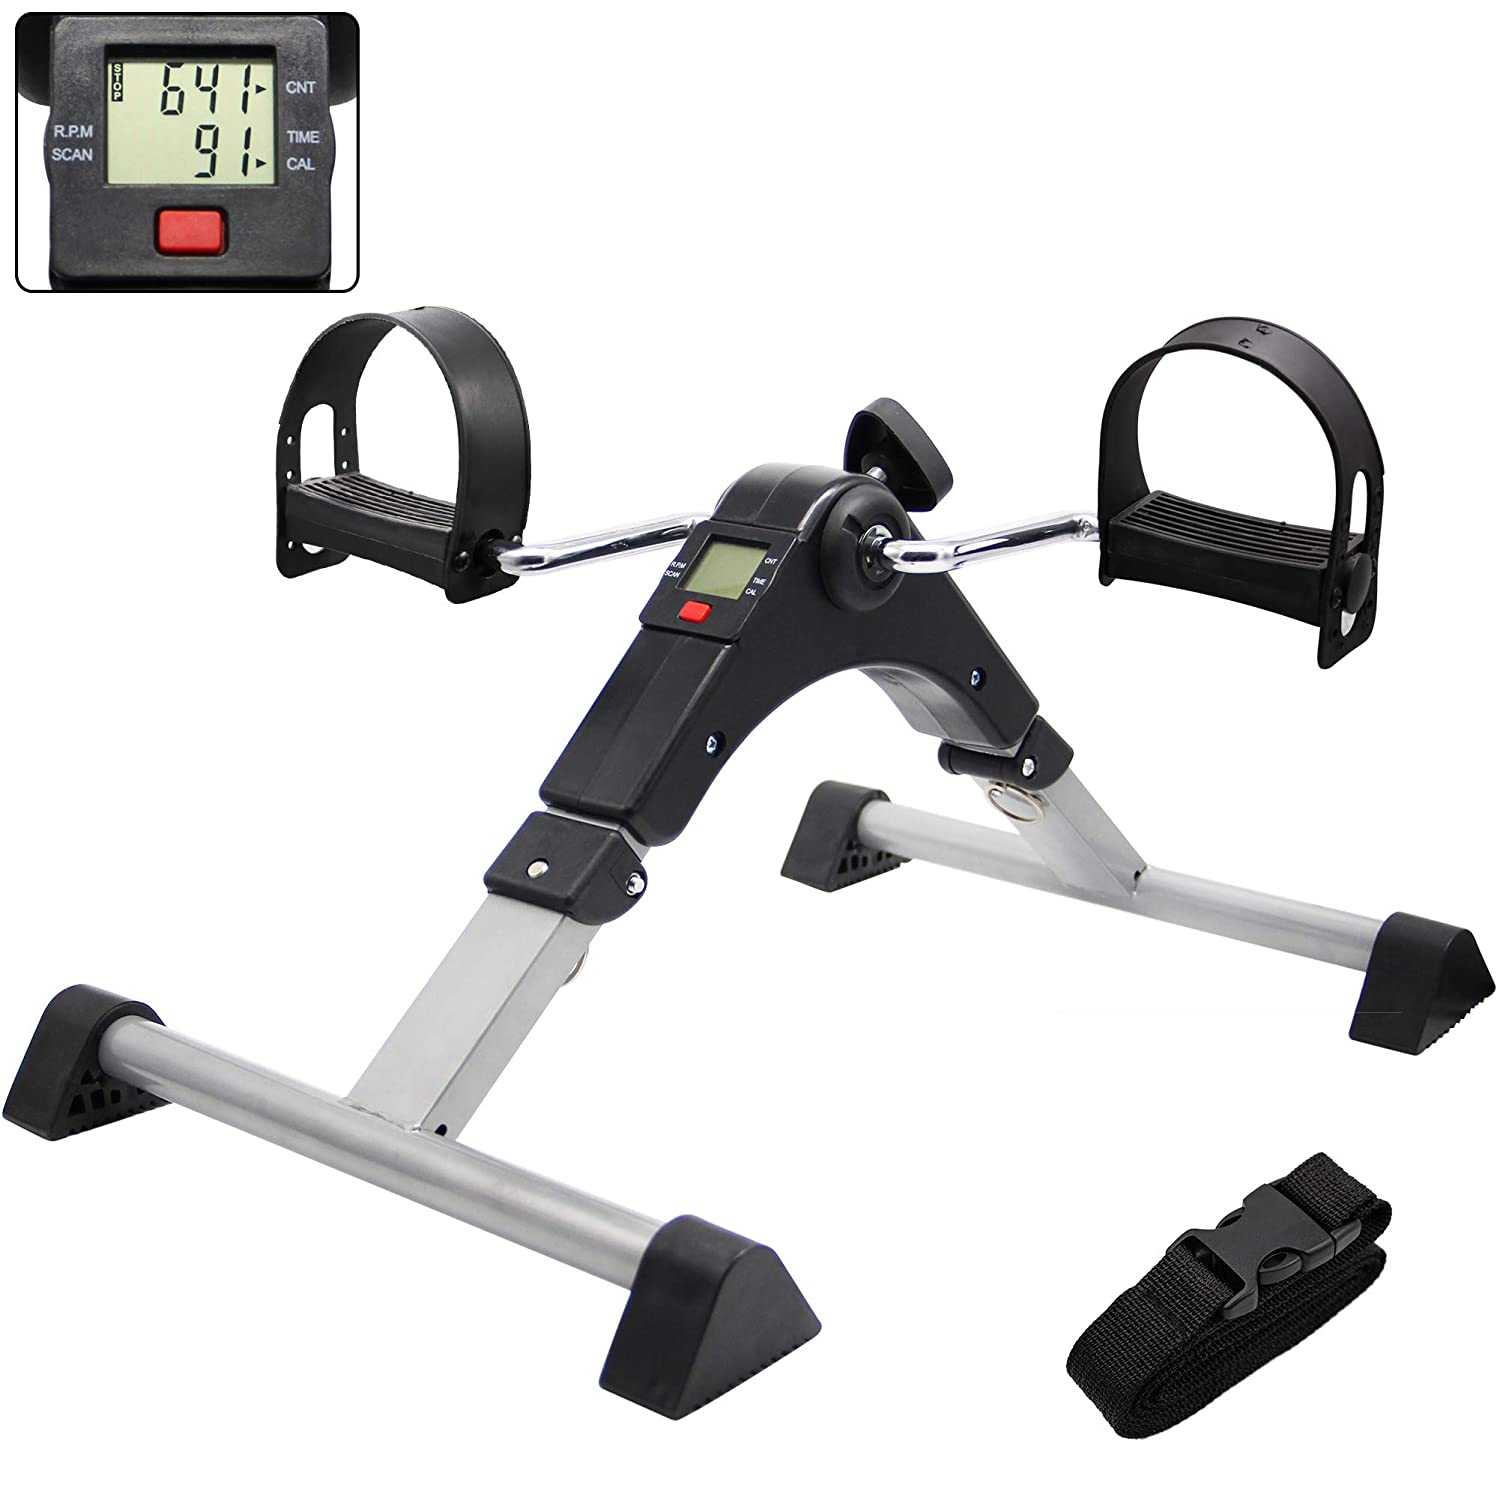 Hausse Folding Exercise Peddler Portable Pedal Exerciser with Electronic Display, Black: Industrial & Scientific